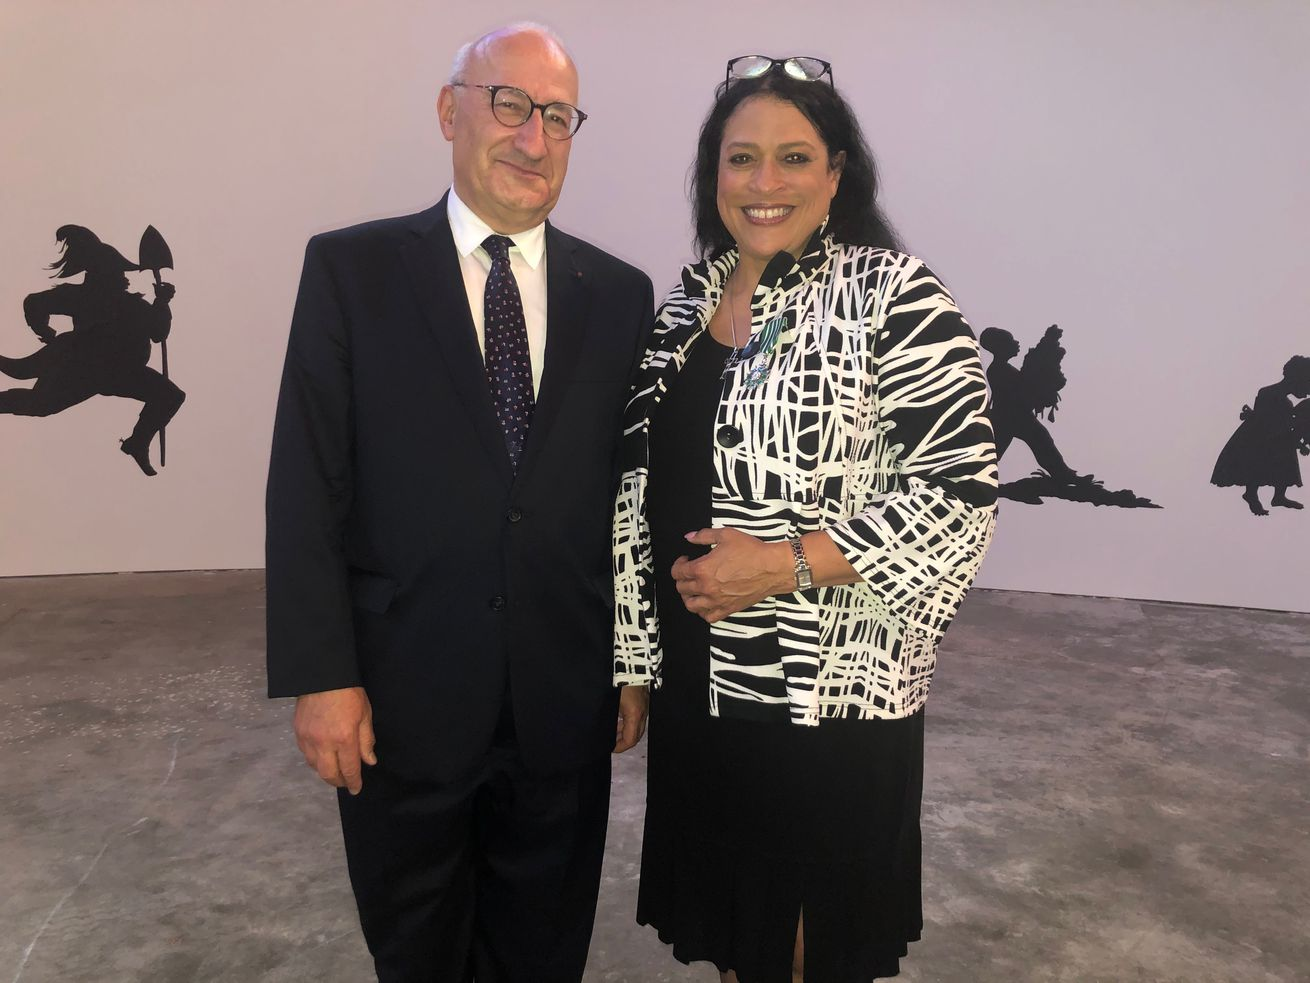 In a visit here, Philippe Etienne, Ambassador of France to the United States, awarded DuSable Museum of African American History President & CEO Perri Irmer the French government's highest honor in the arts, The Order of Arts and Letters, citing museum programs highlighting the relationship between African Americans and the French.